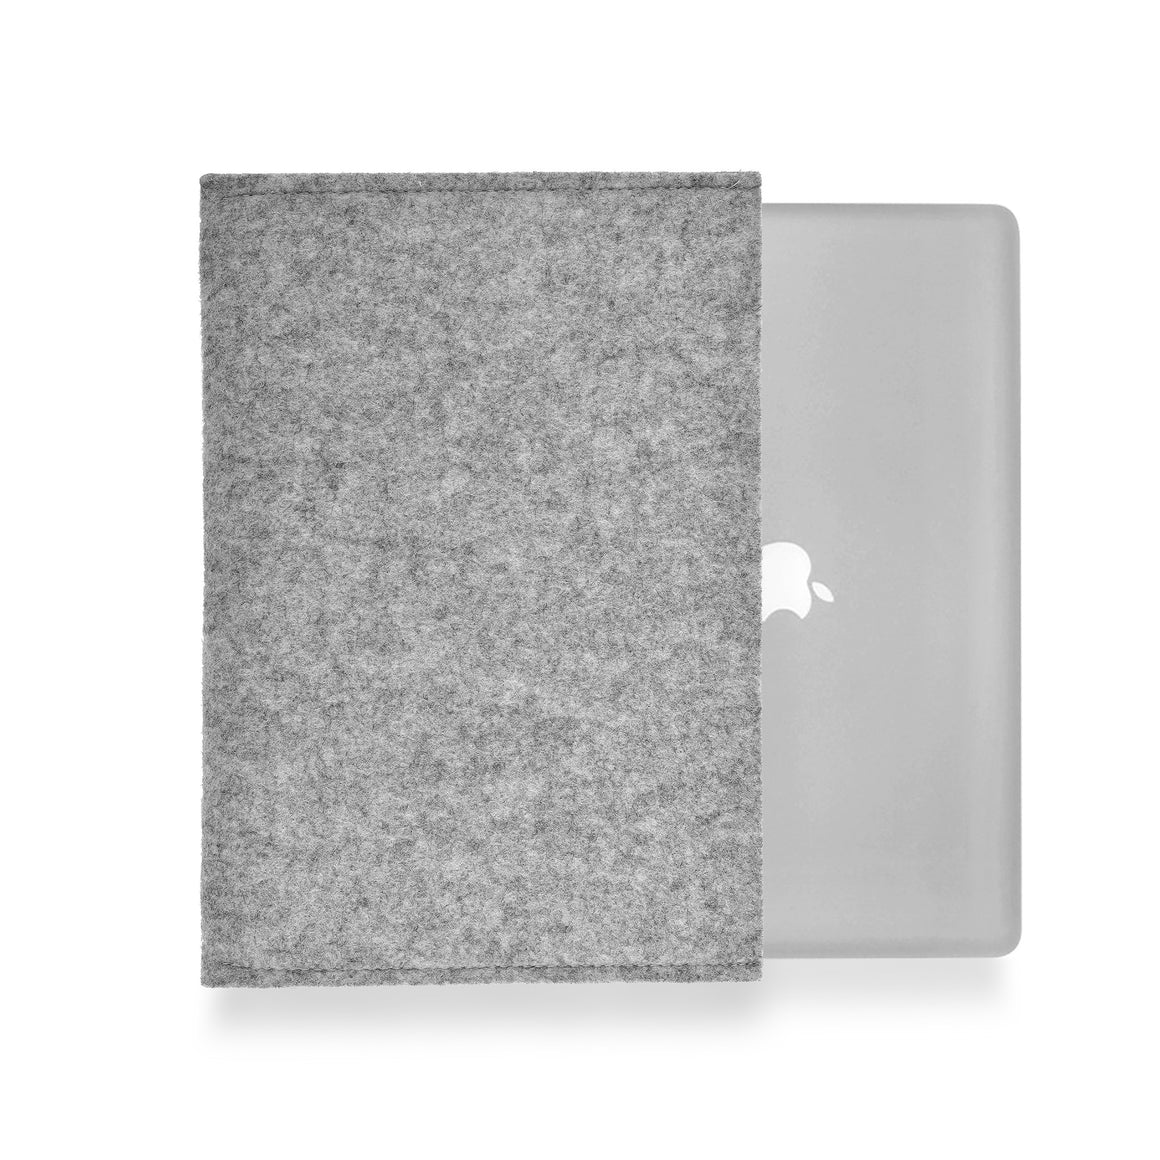 MacBook Pro 13 inch Wool Felt Grey Landscape - Wrappers UK